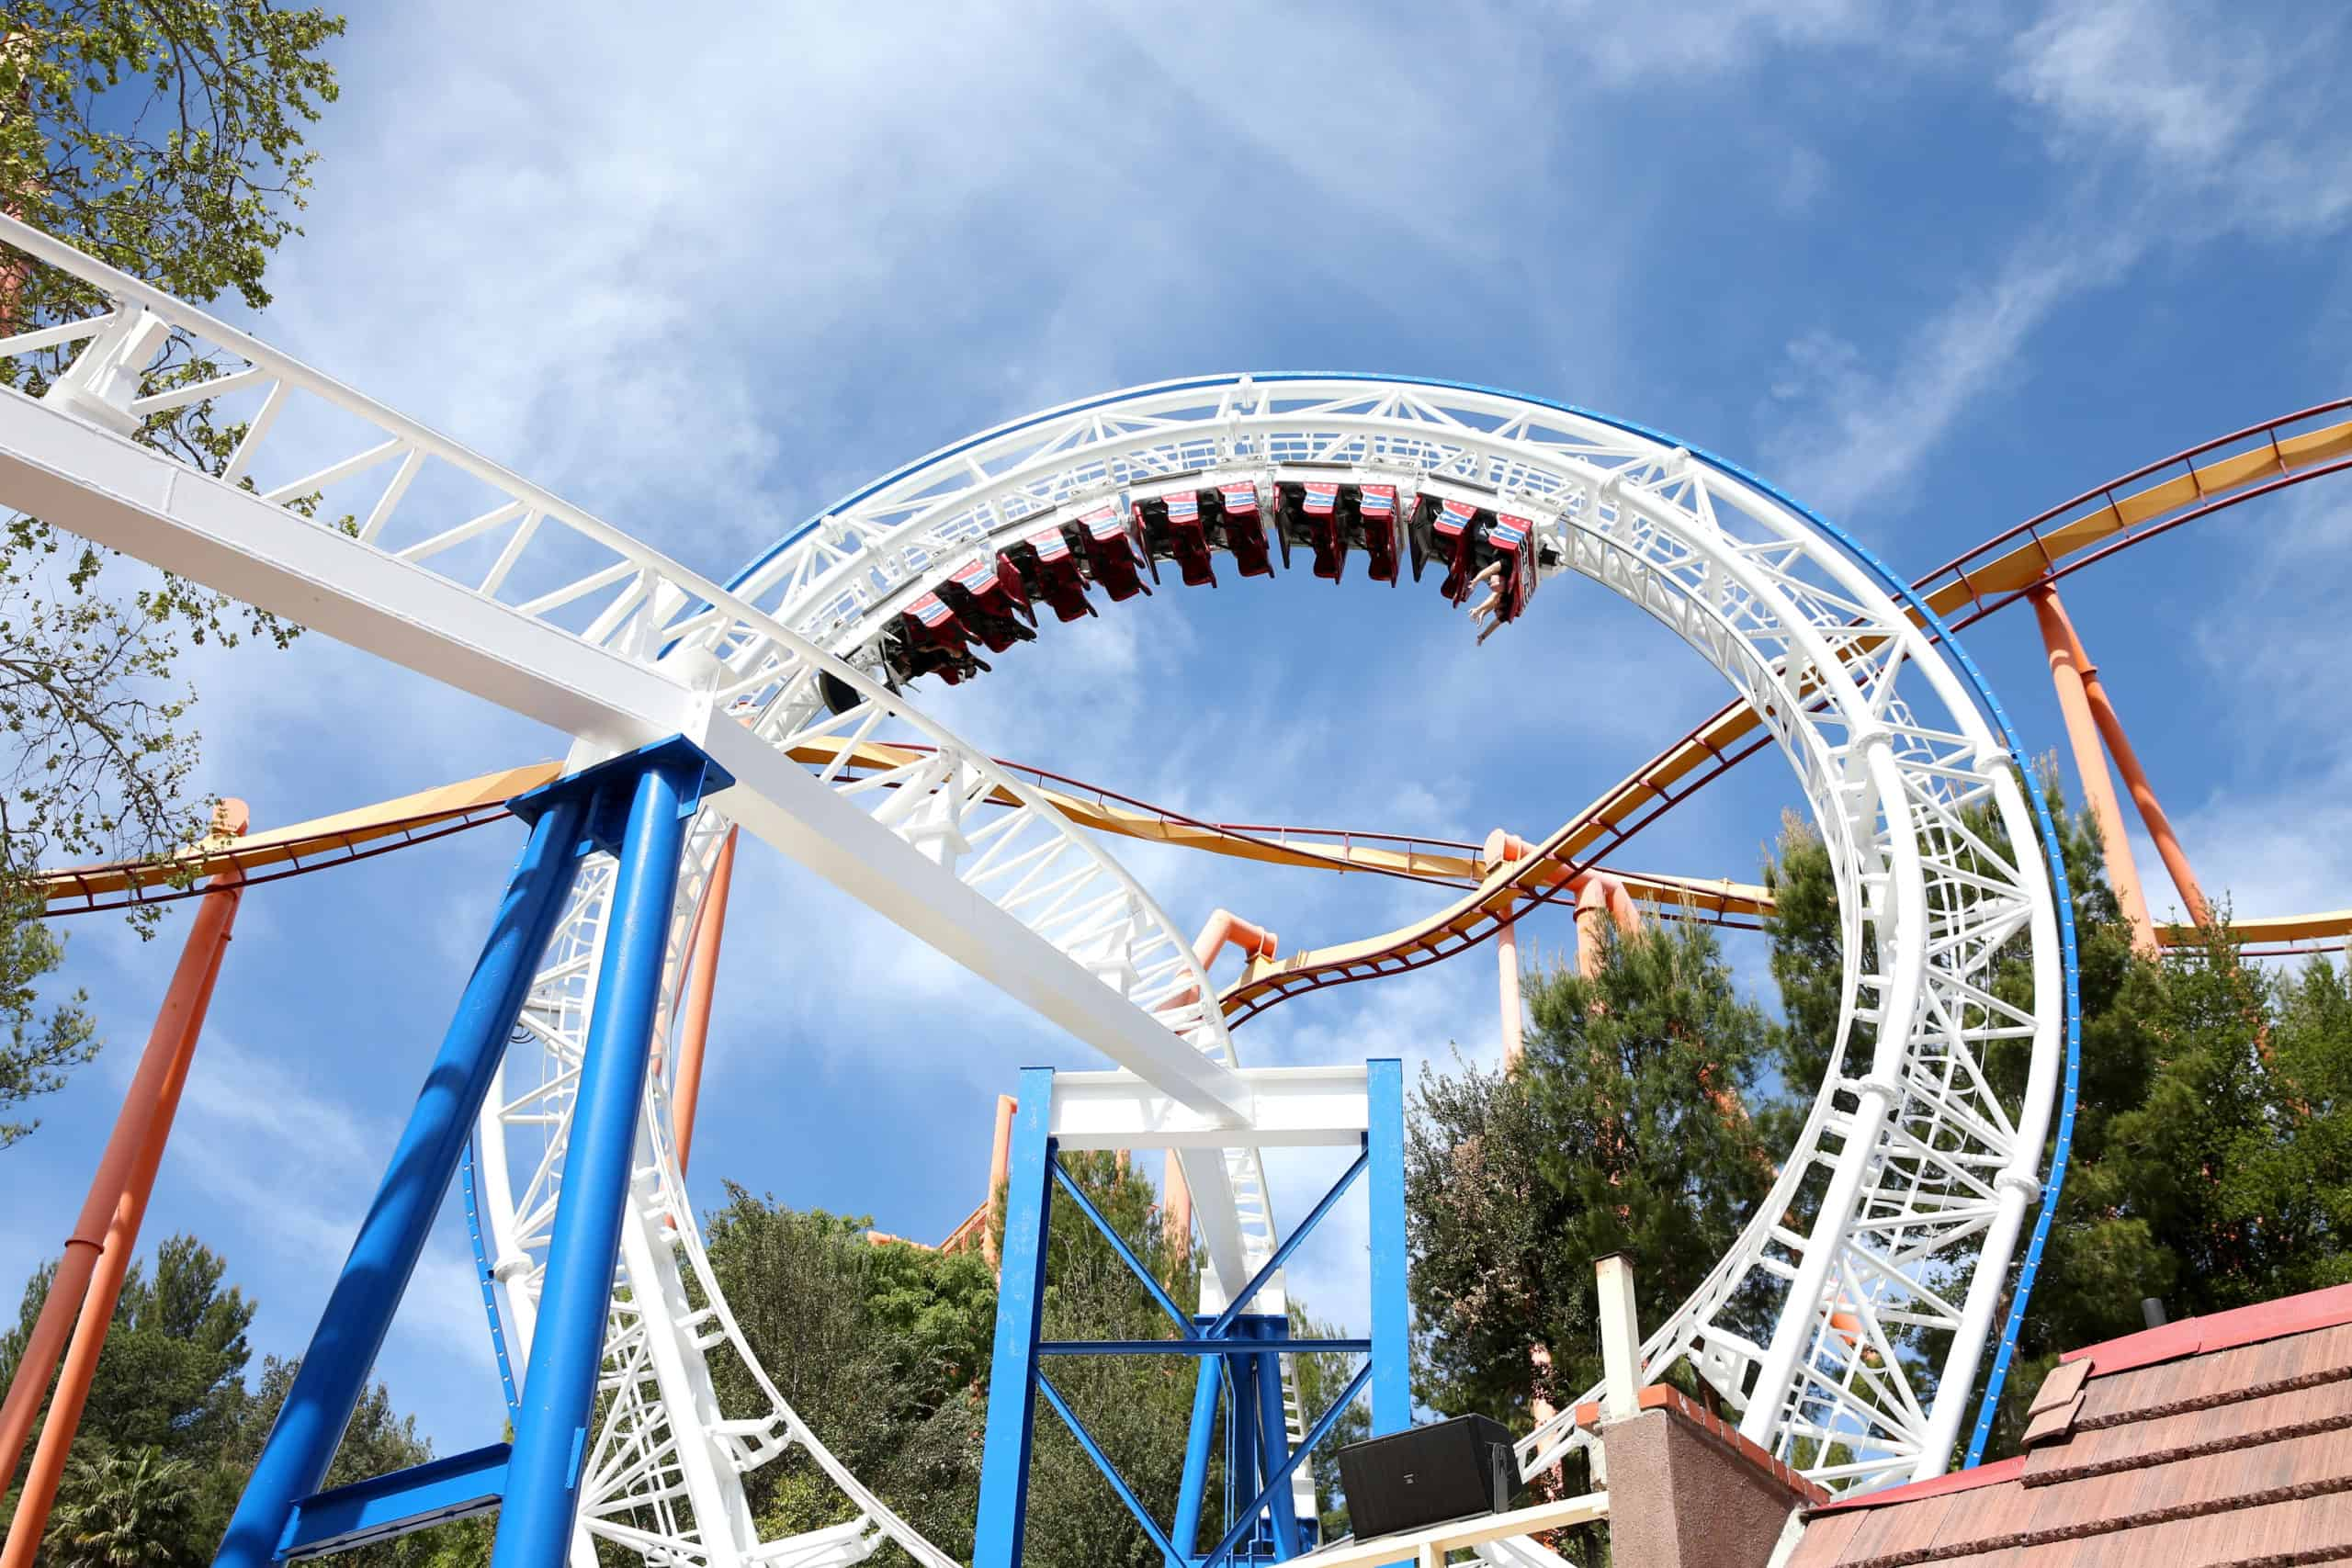 California Man Says He Ate Nearly Every Meal At Six Flags For $150 A Year And Paid Off His Student Loans